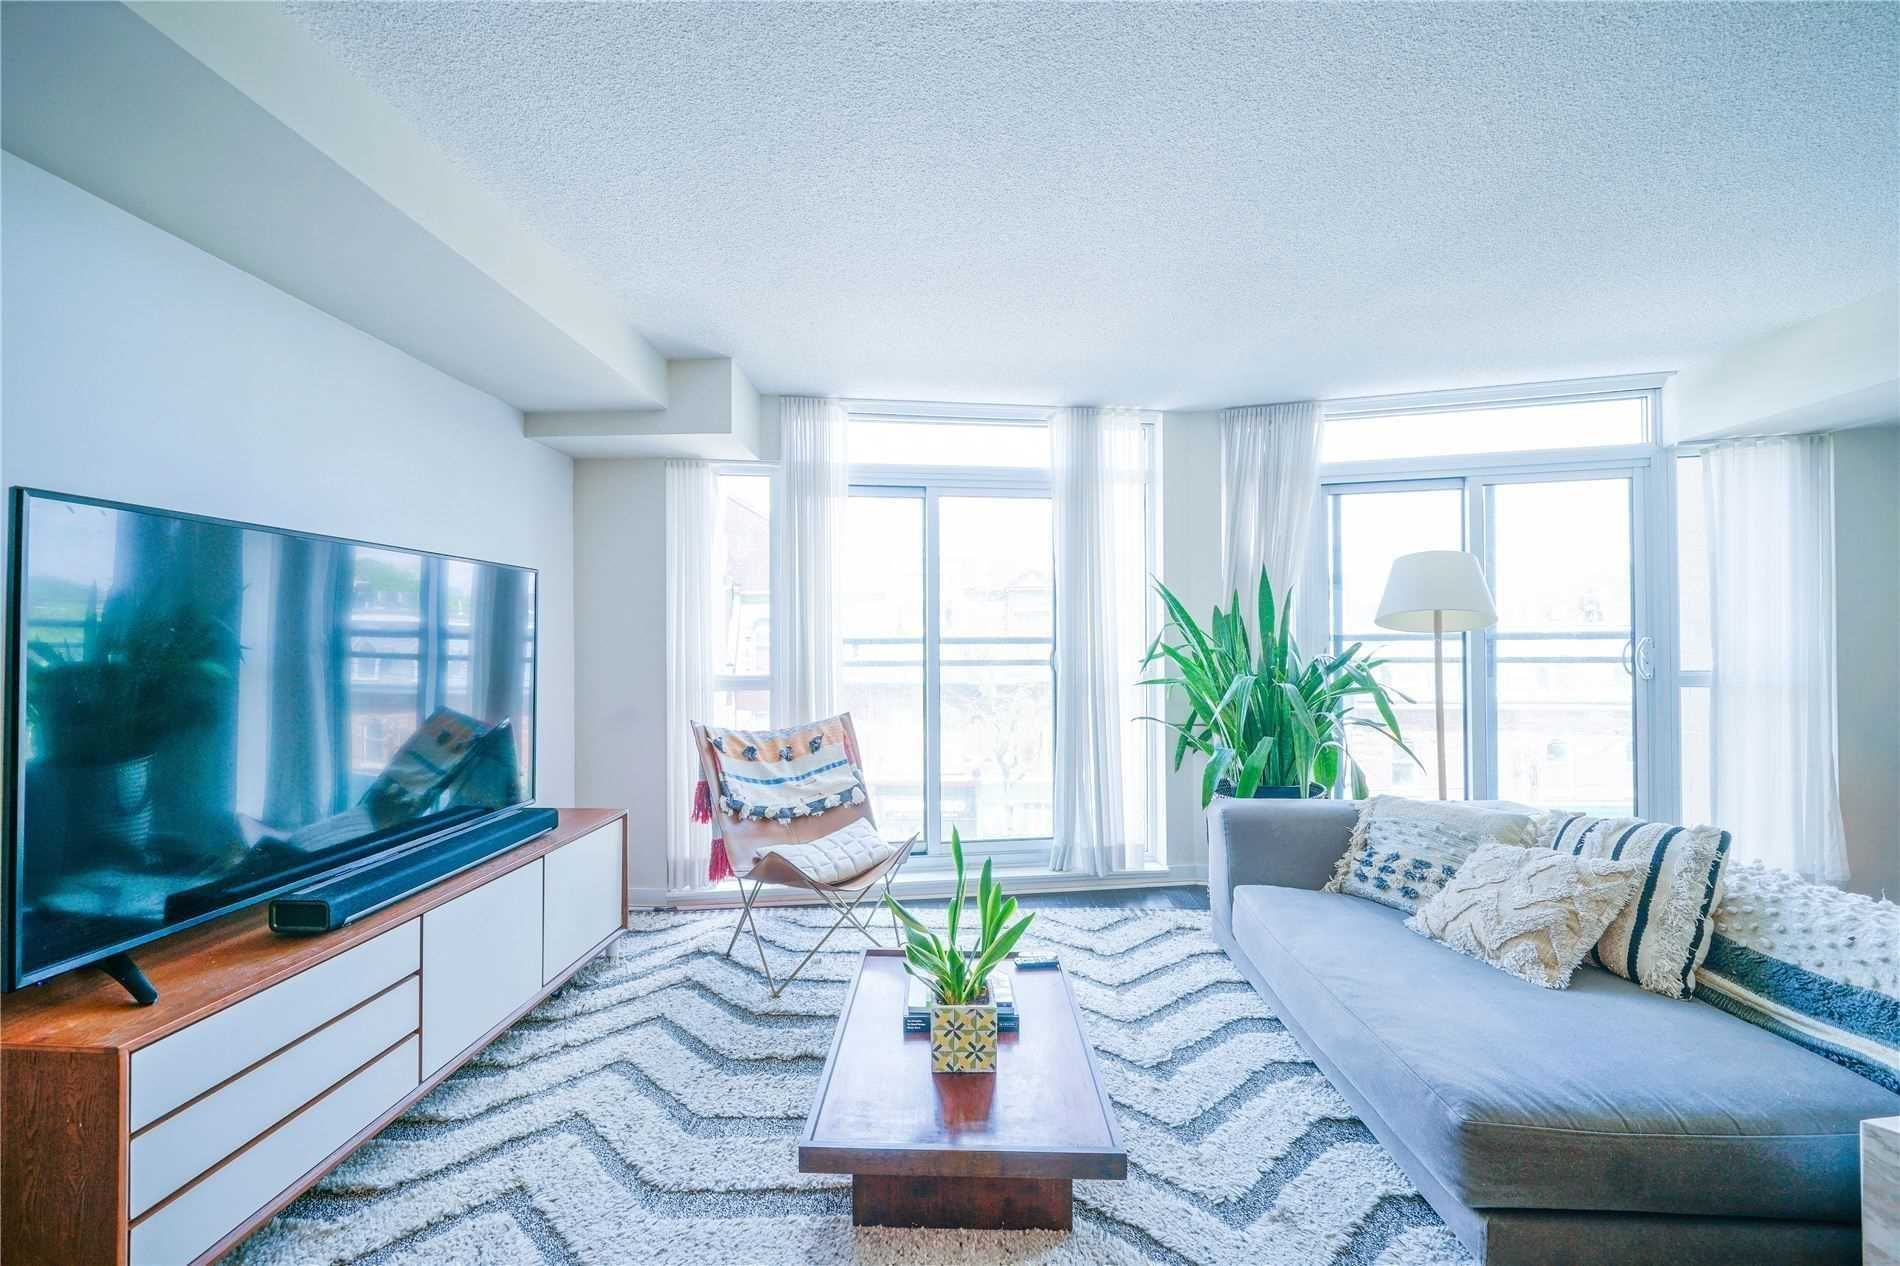 1169 Queen St W, unit 317 for sale in Toronto - image #2